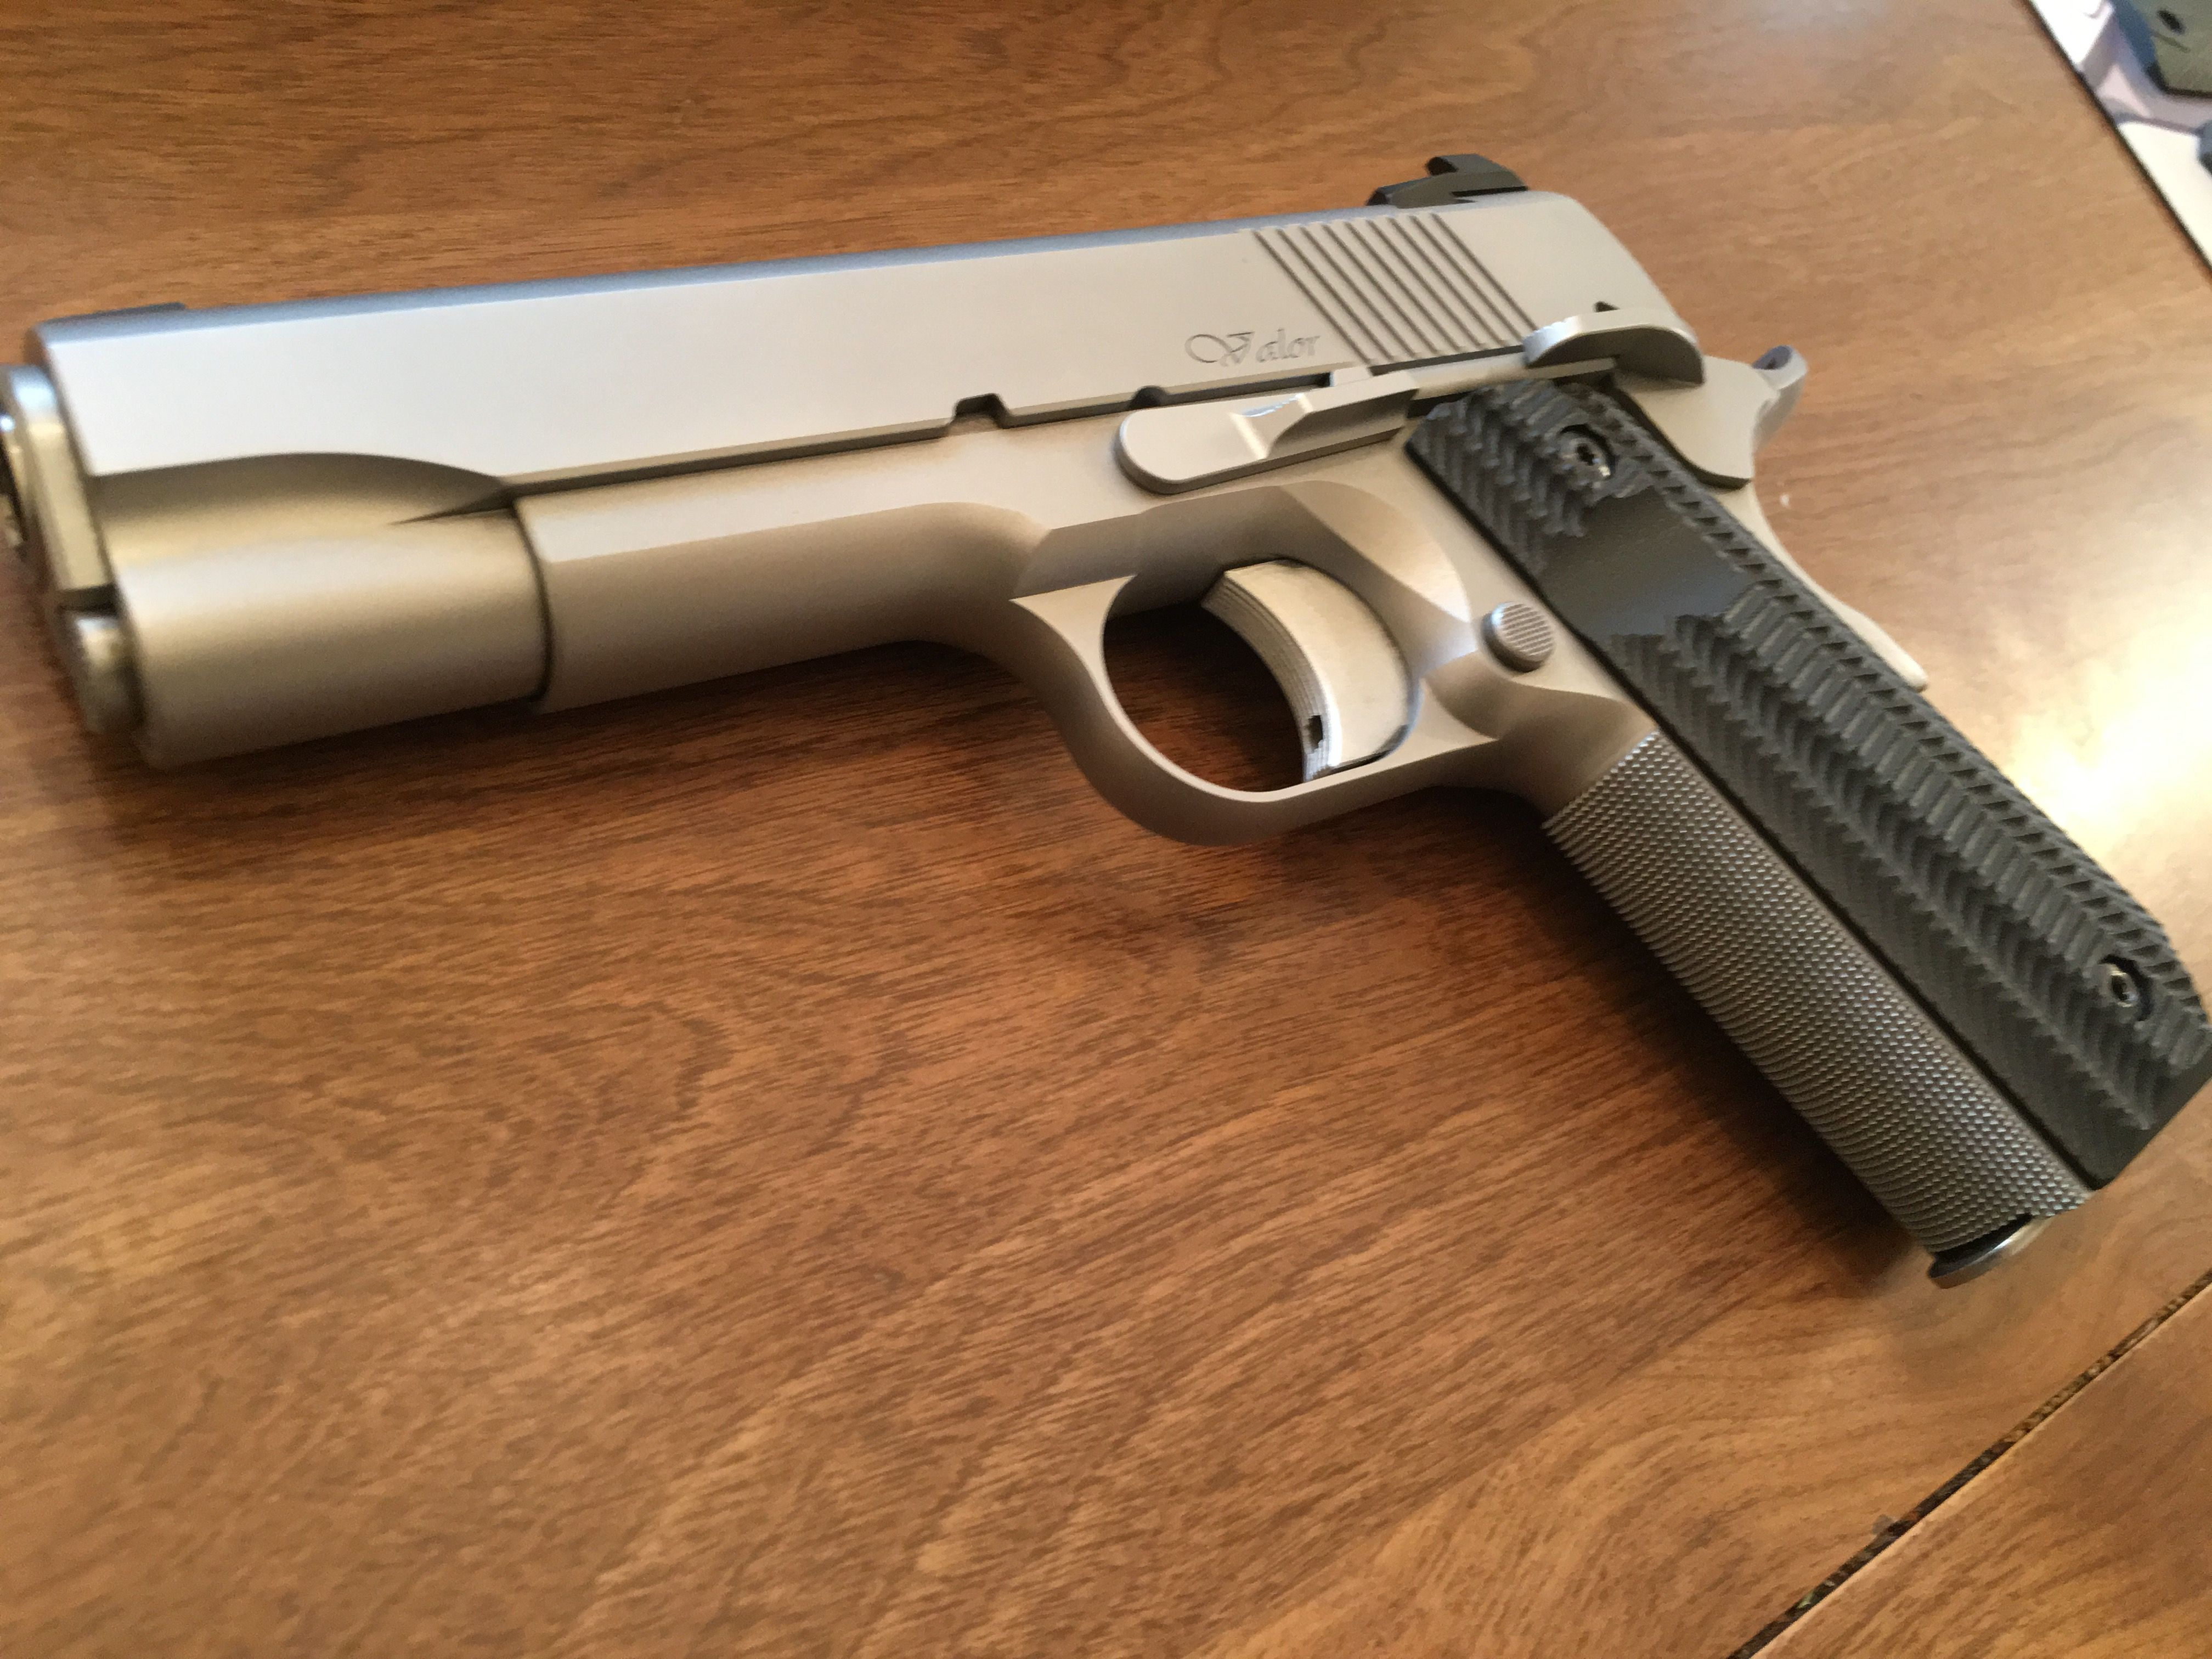 Pin by RAE Industries on Cool stuff | Hand guns, Guns, Firearms